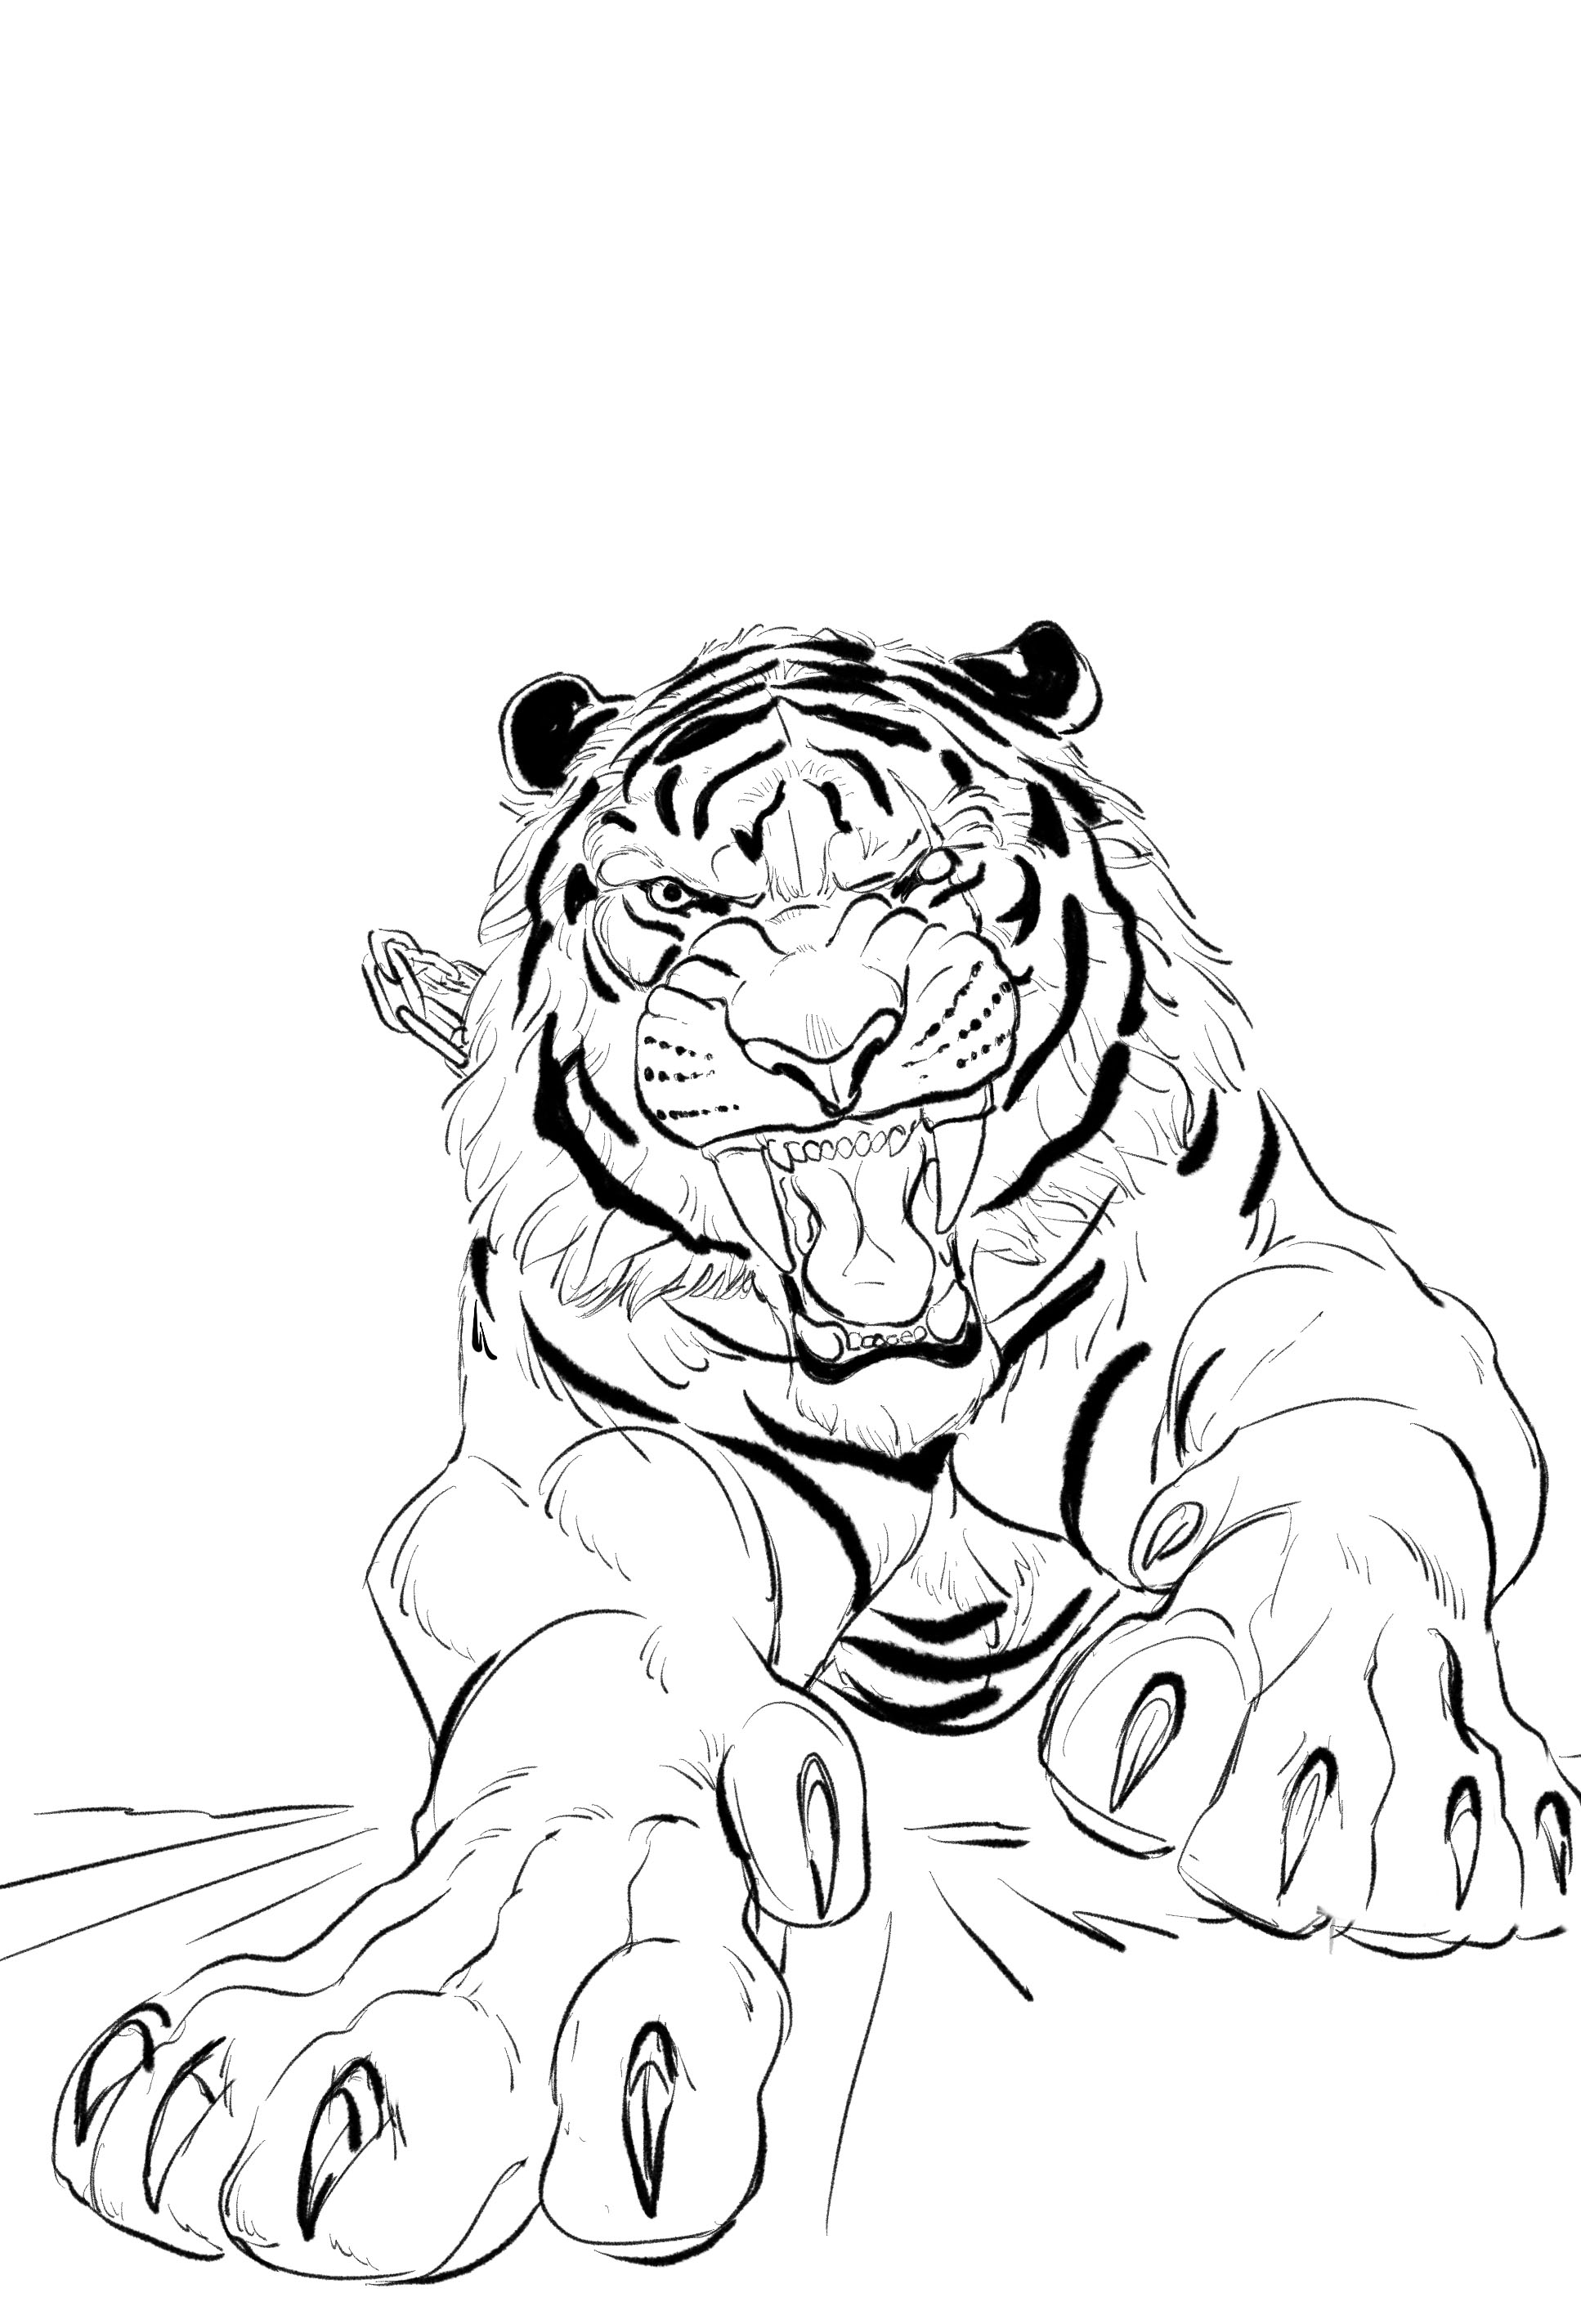 Here's an image ready for painting from Volume 2.